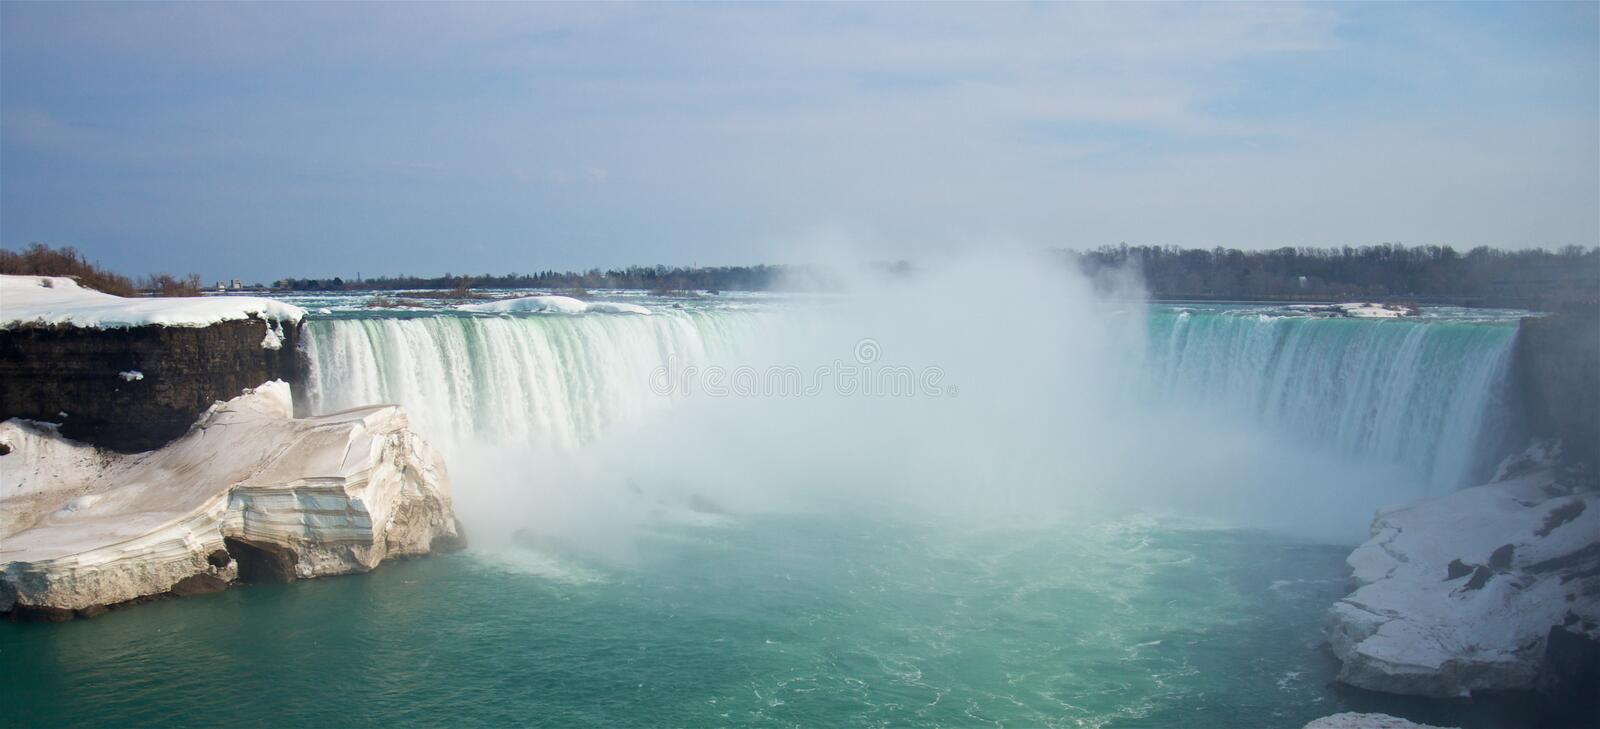 Spring panoramic view of the famous Niagara Falls Horseshoe Falls royalty free stock photo